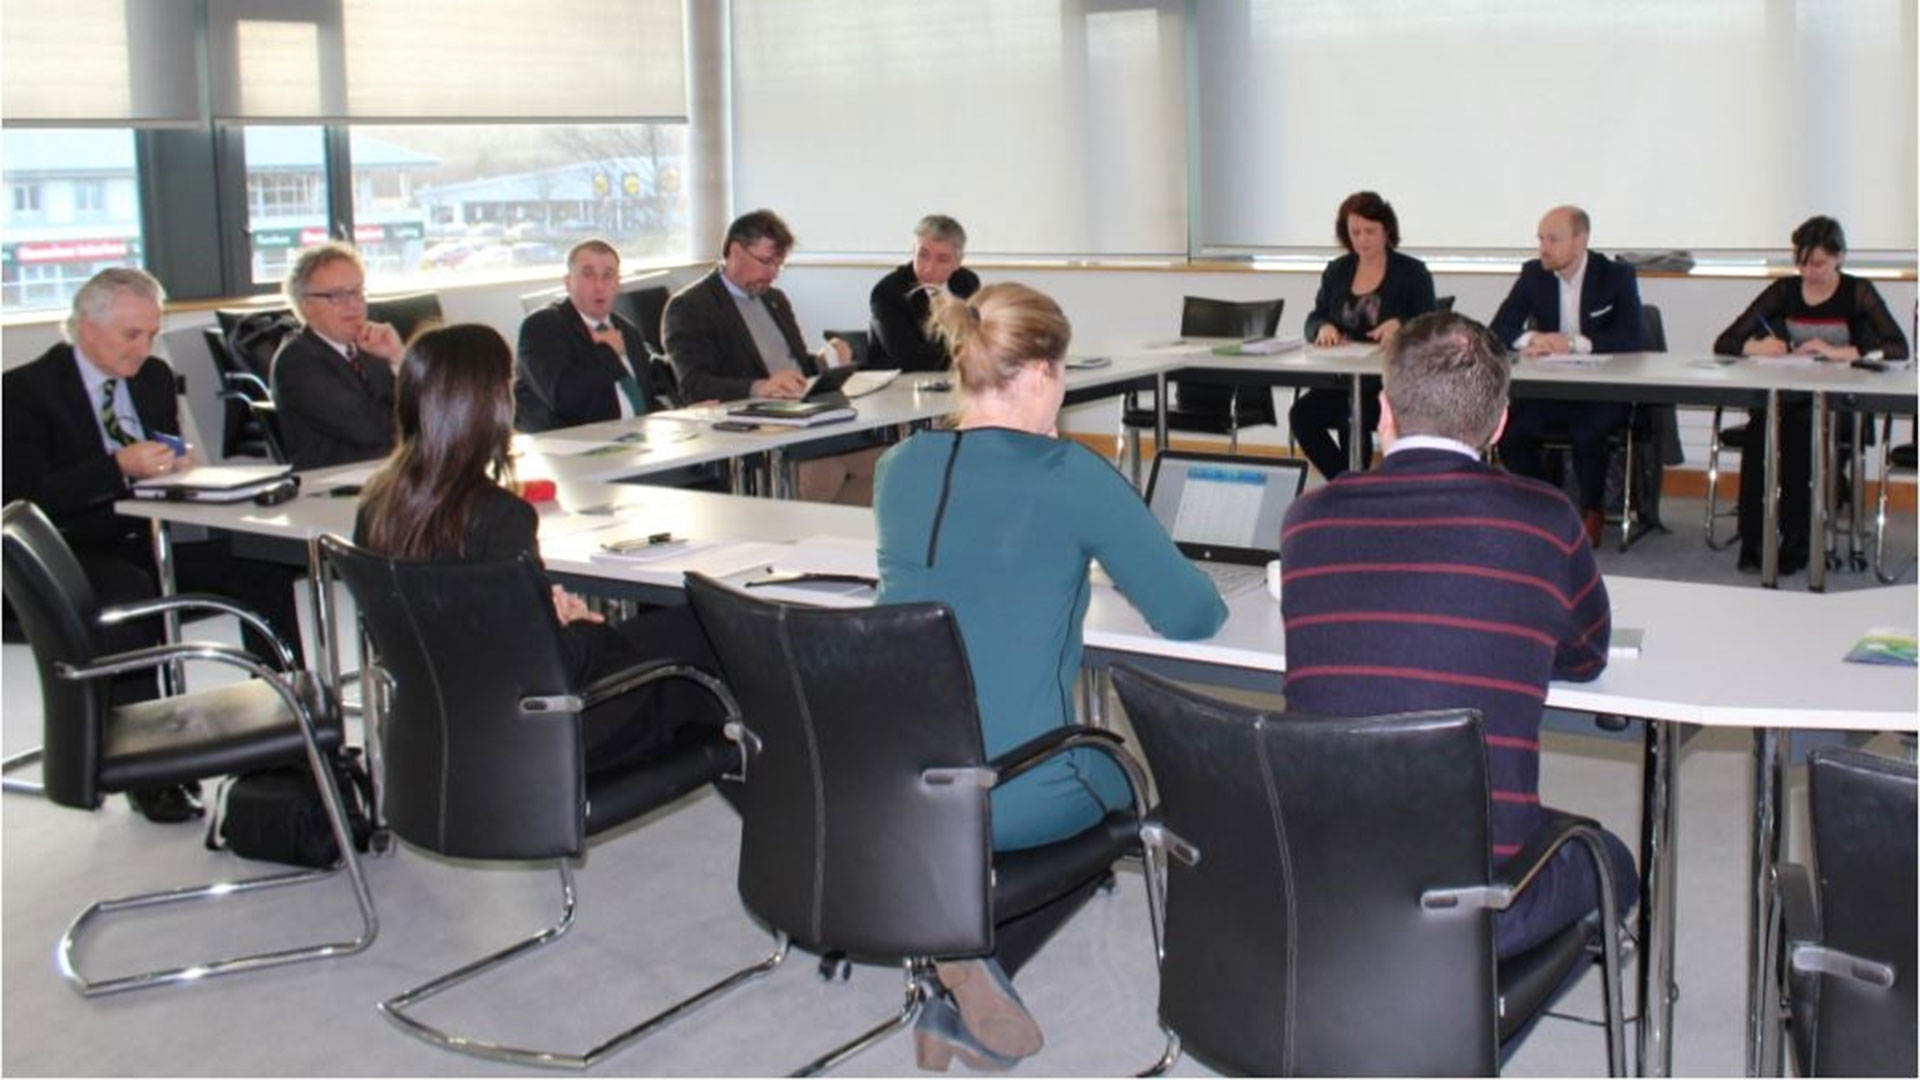 Donegal Digital's 13th fruitful meeting